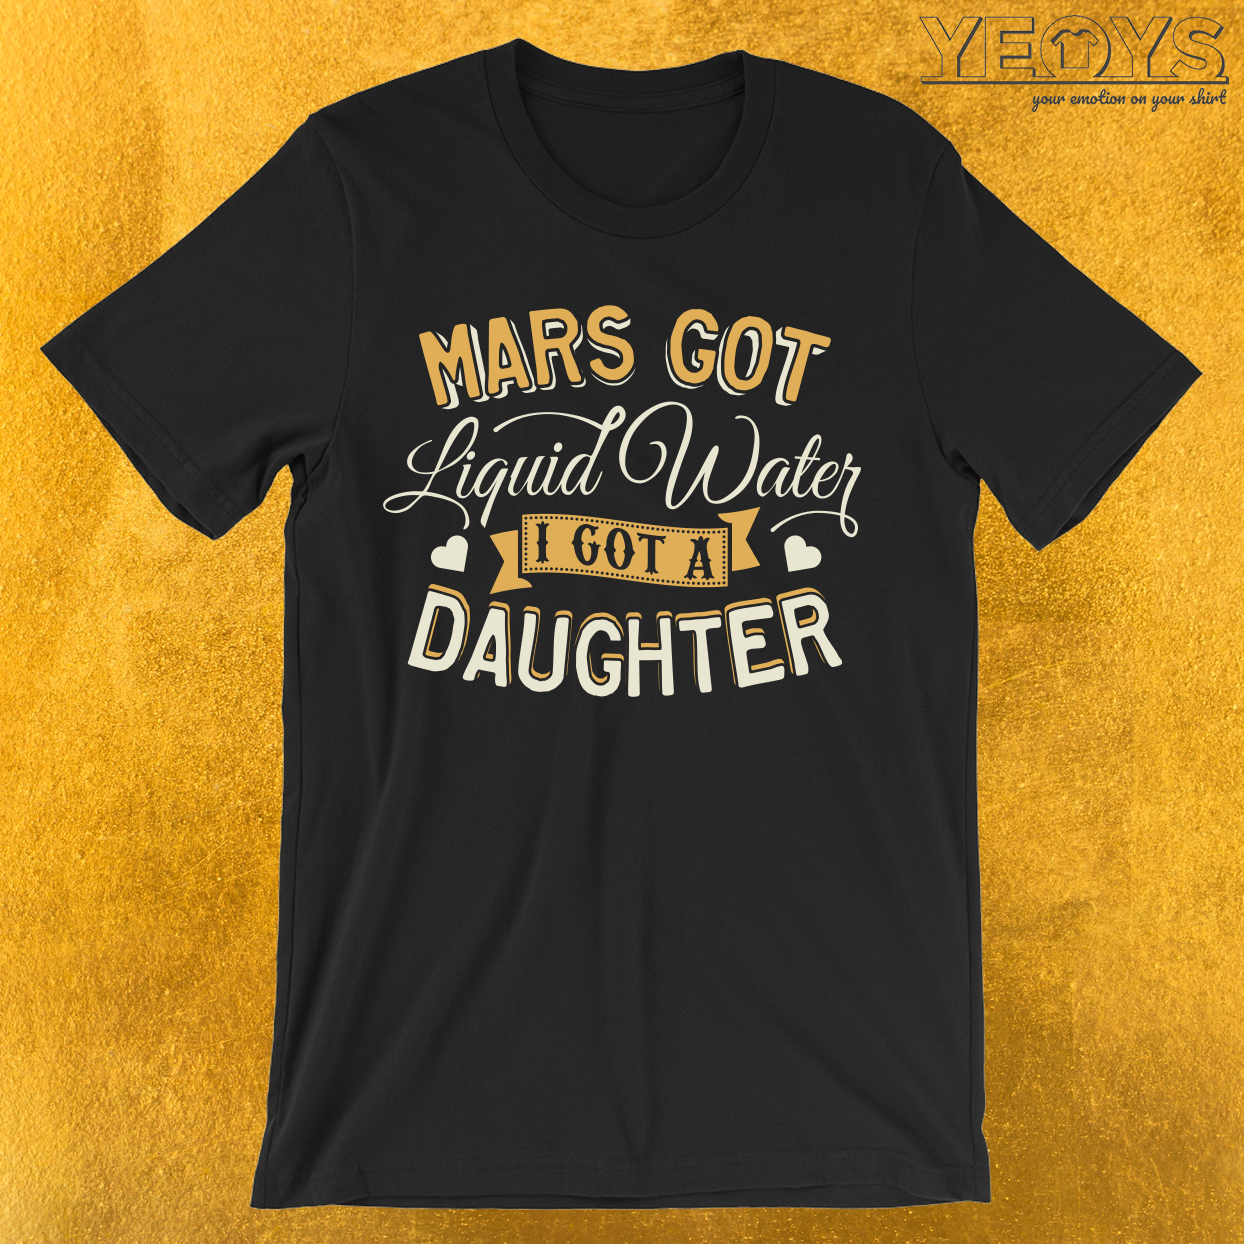 Mars Got Liquid Water I Got A Daughter T-Shirt